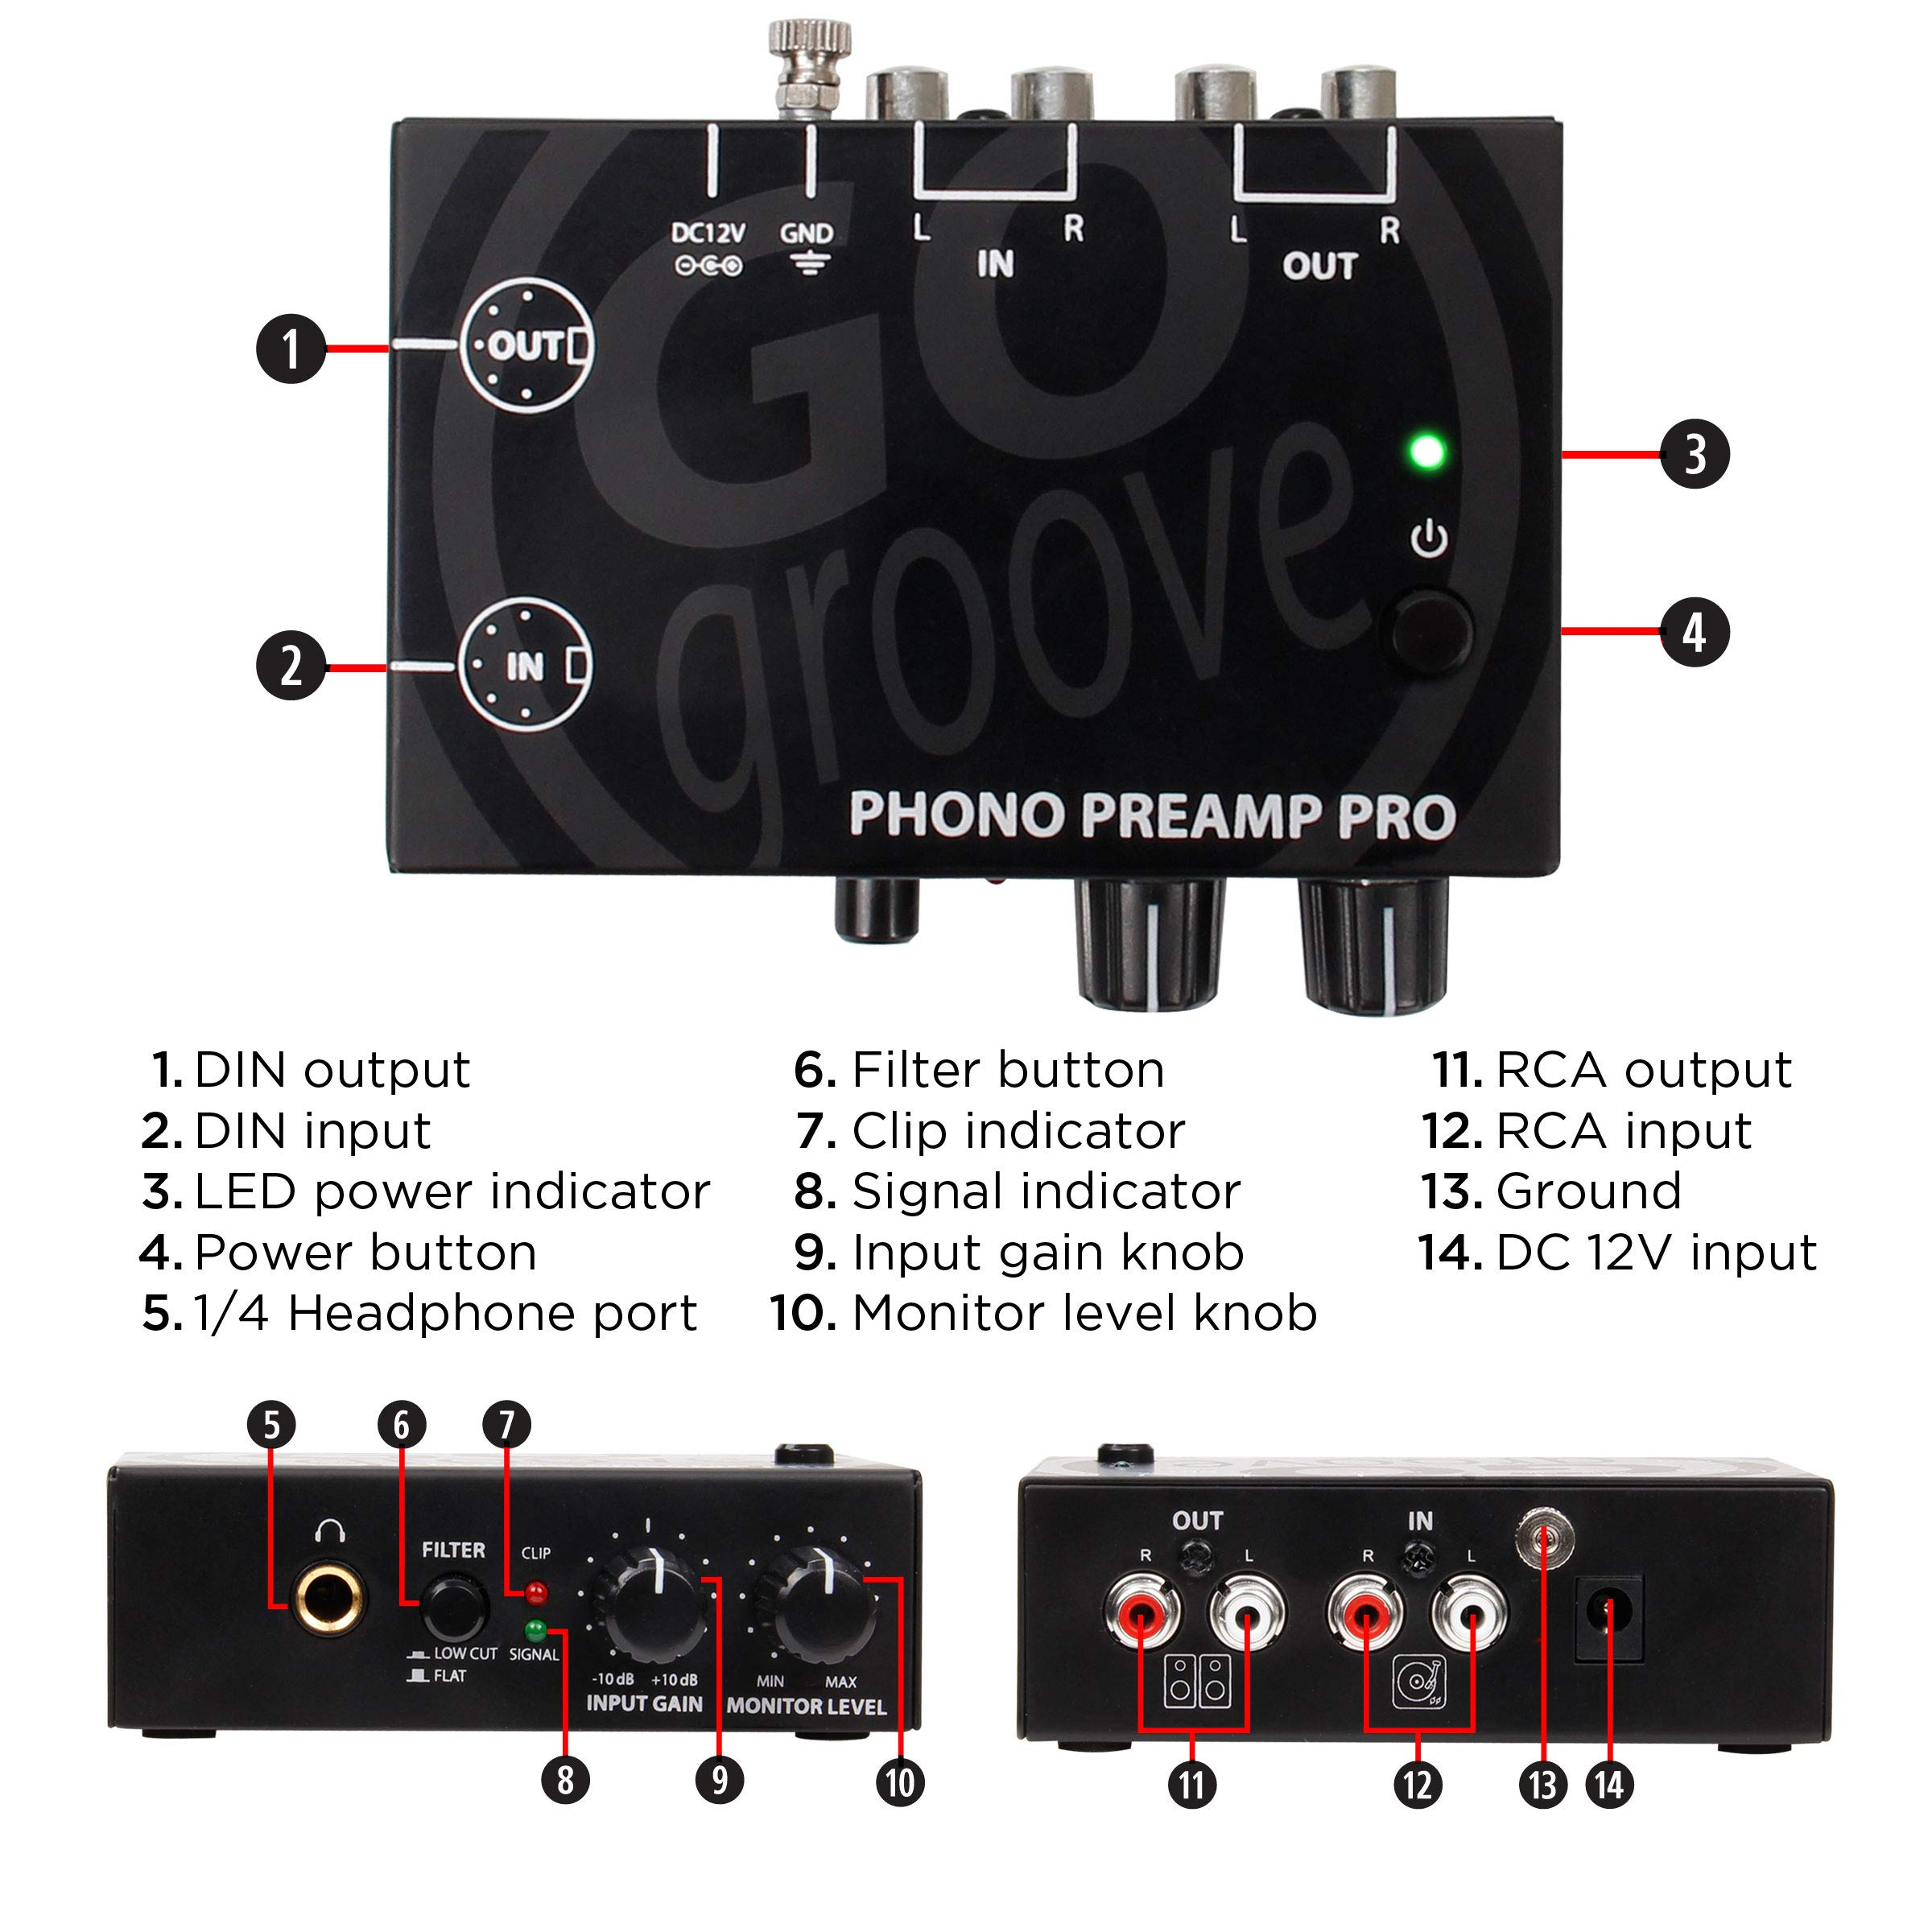 GOgroove Phono Preamp Pro Preamplifier with RCA Input/Output, DIN Connection, RIAA Equalization, 12V AC Adapter - Compatible with Vinyl Record Players, Turntables, Stereos, DJ Mixers by GOgroove (Image #4)